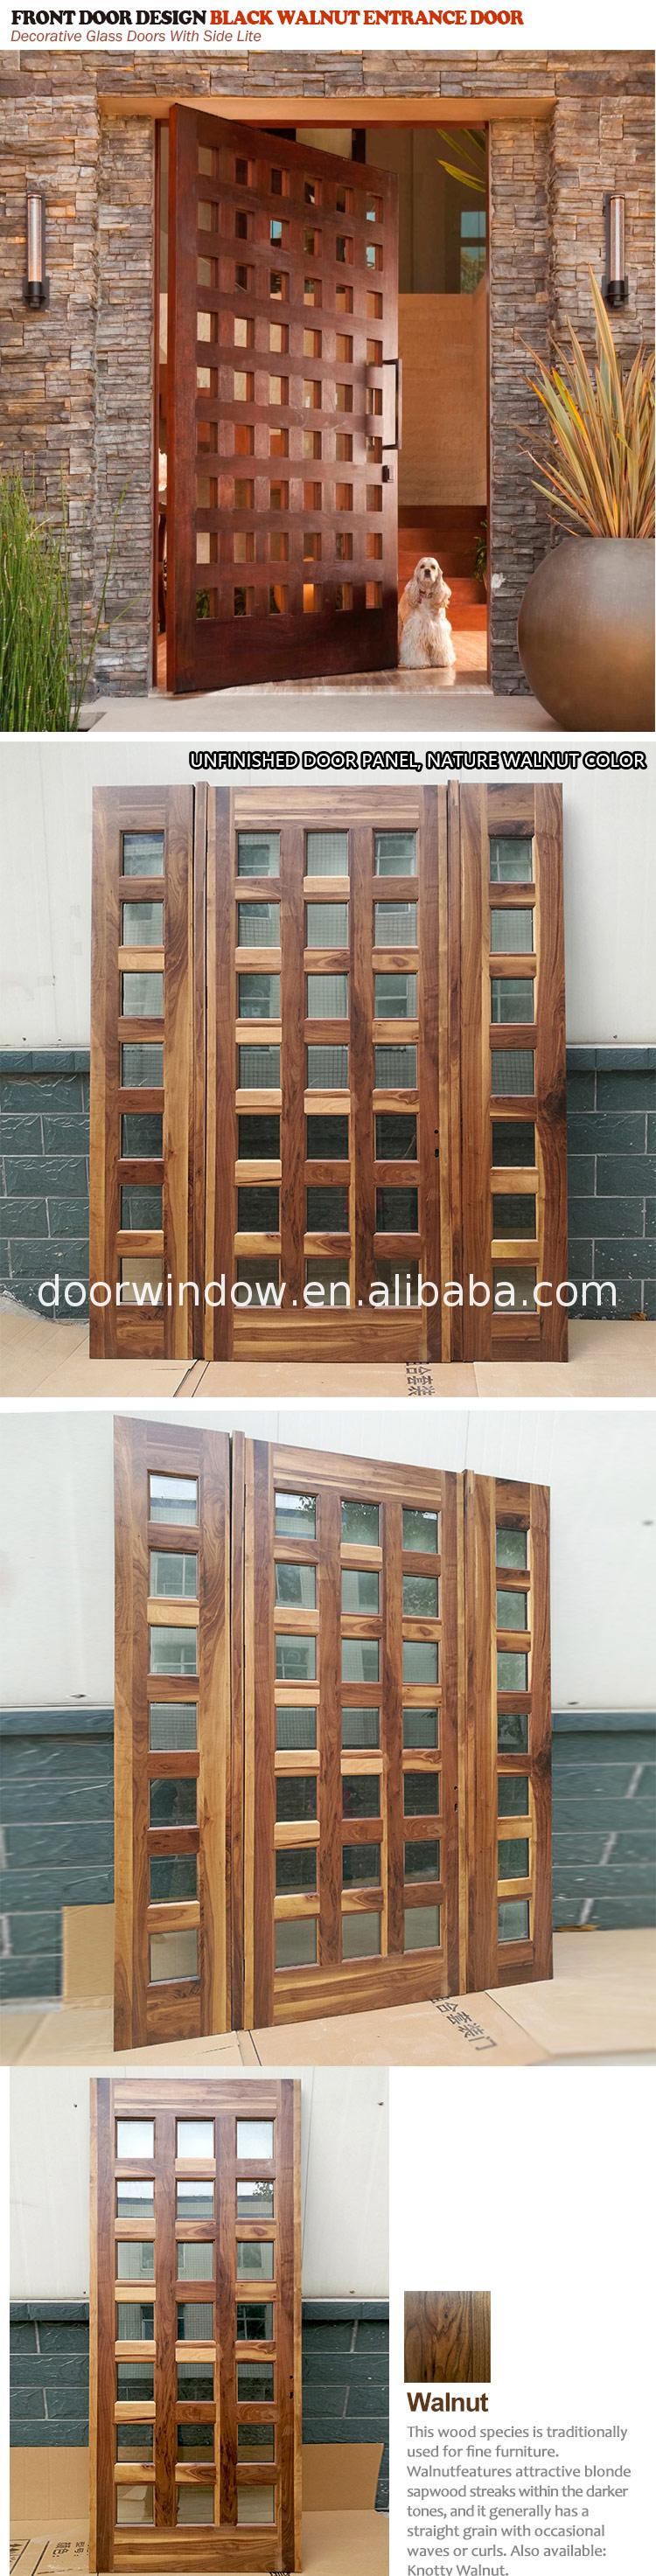 Factory outlet real wood doors quality prehung front door with sidelites